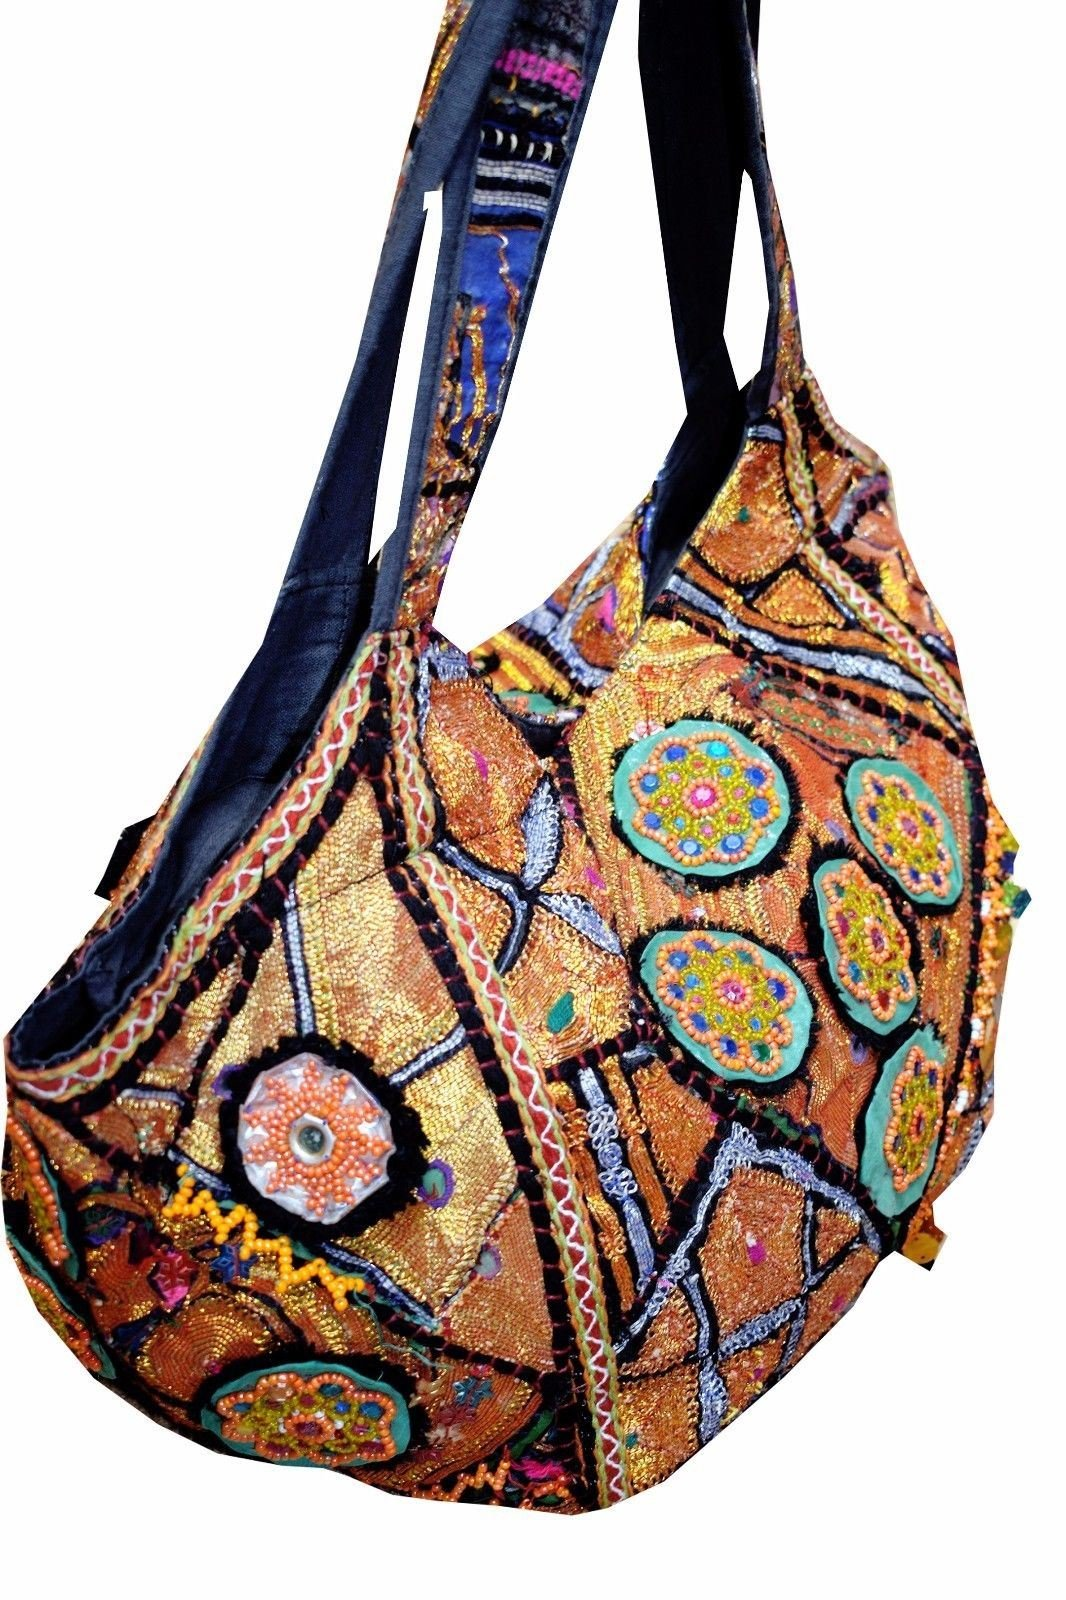 New Womens Handmade Vintage Tribal Patchwork Indian Ethnic Tote Hippie Gypsy Bohemian Shoulder Bag by Gypsia Studio (Image #3)